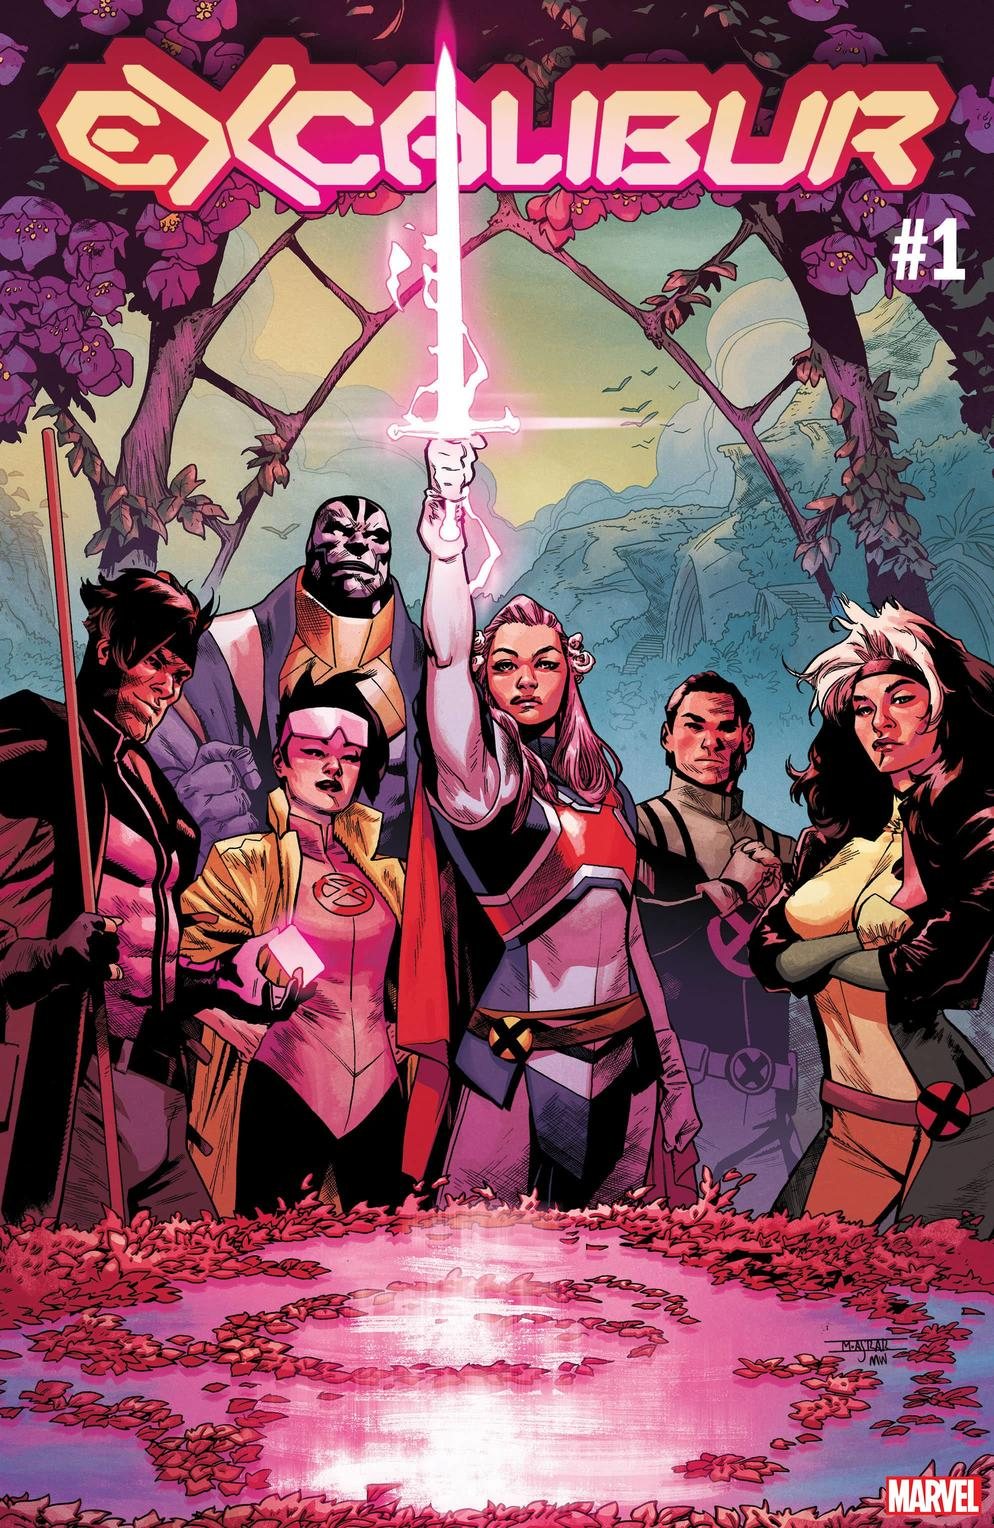 Jonathan Hickman brings forth the X-Men back into the spotlight  Credit: Jack Kirby, Stan Lee, Chris Claremont, Herb Trimpe, and Fred Kida  ©Marvel Comics 2019